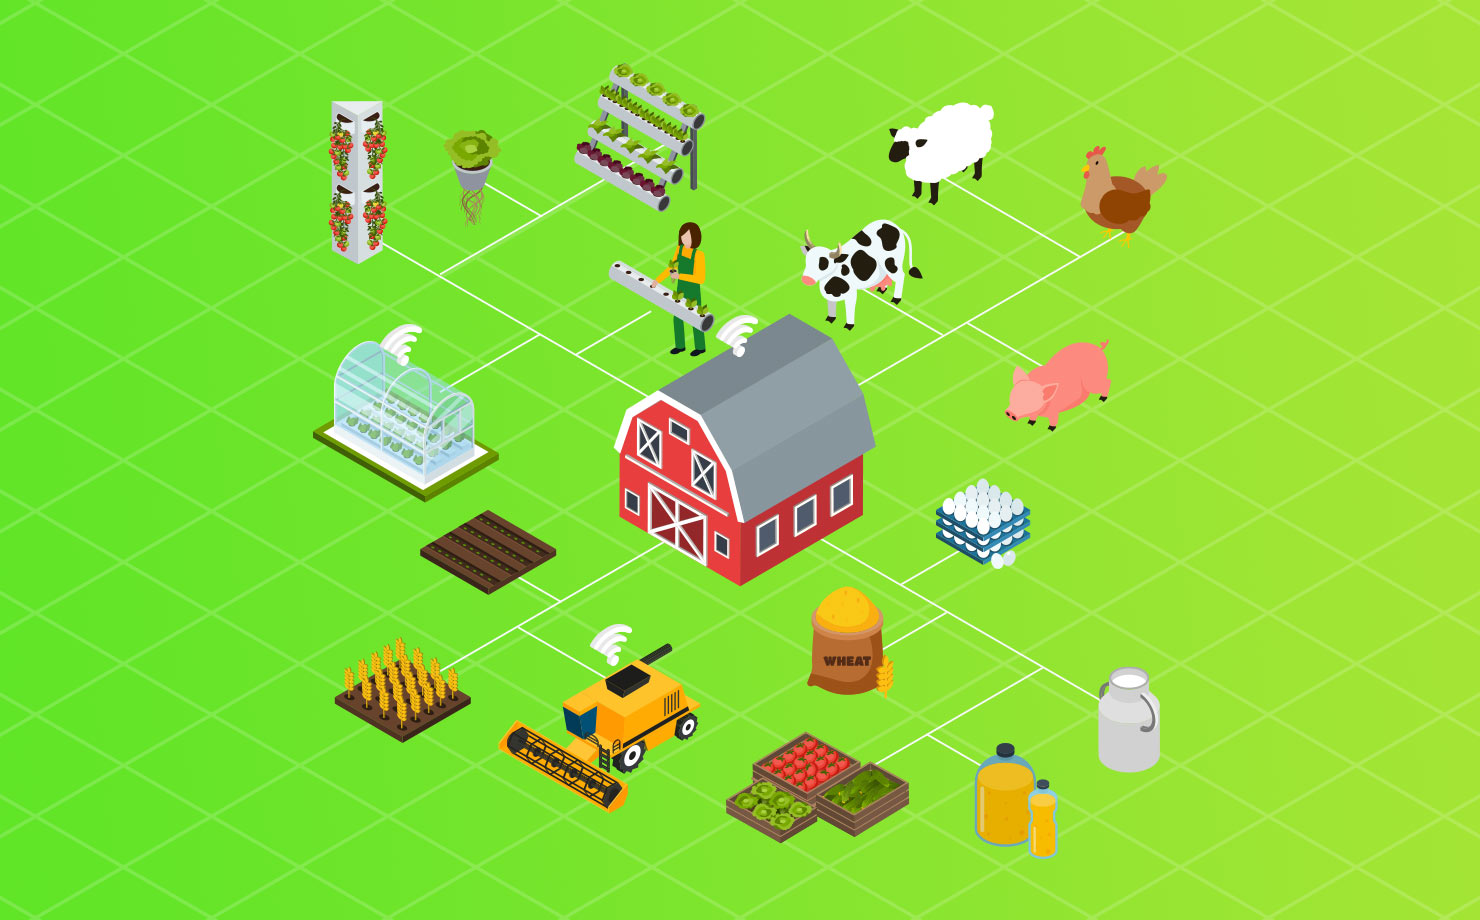 AI tech in agriculture